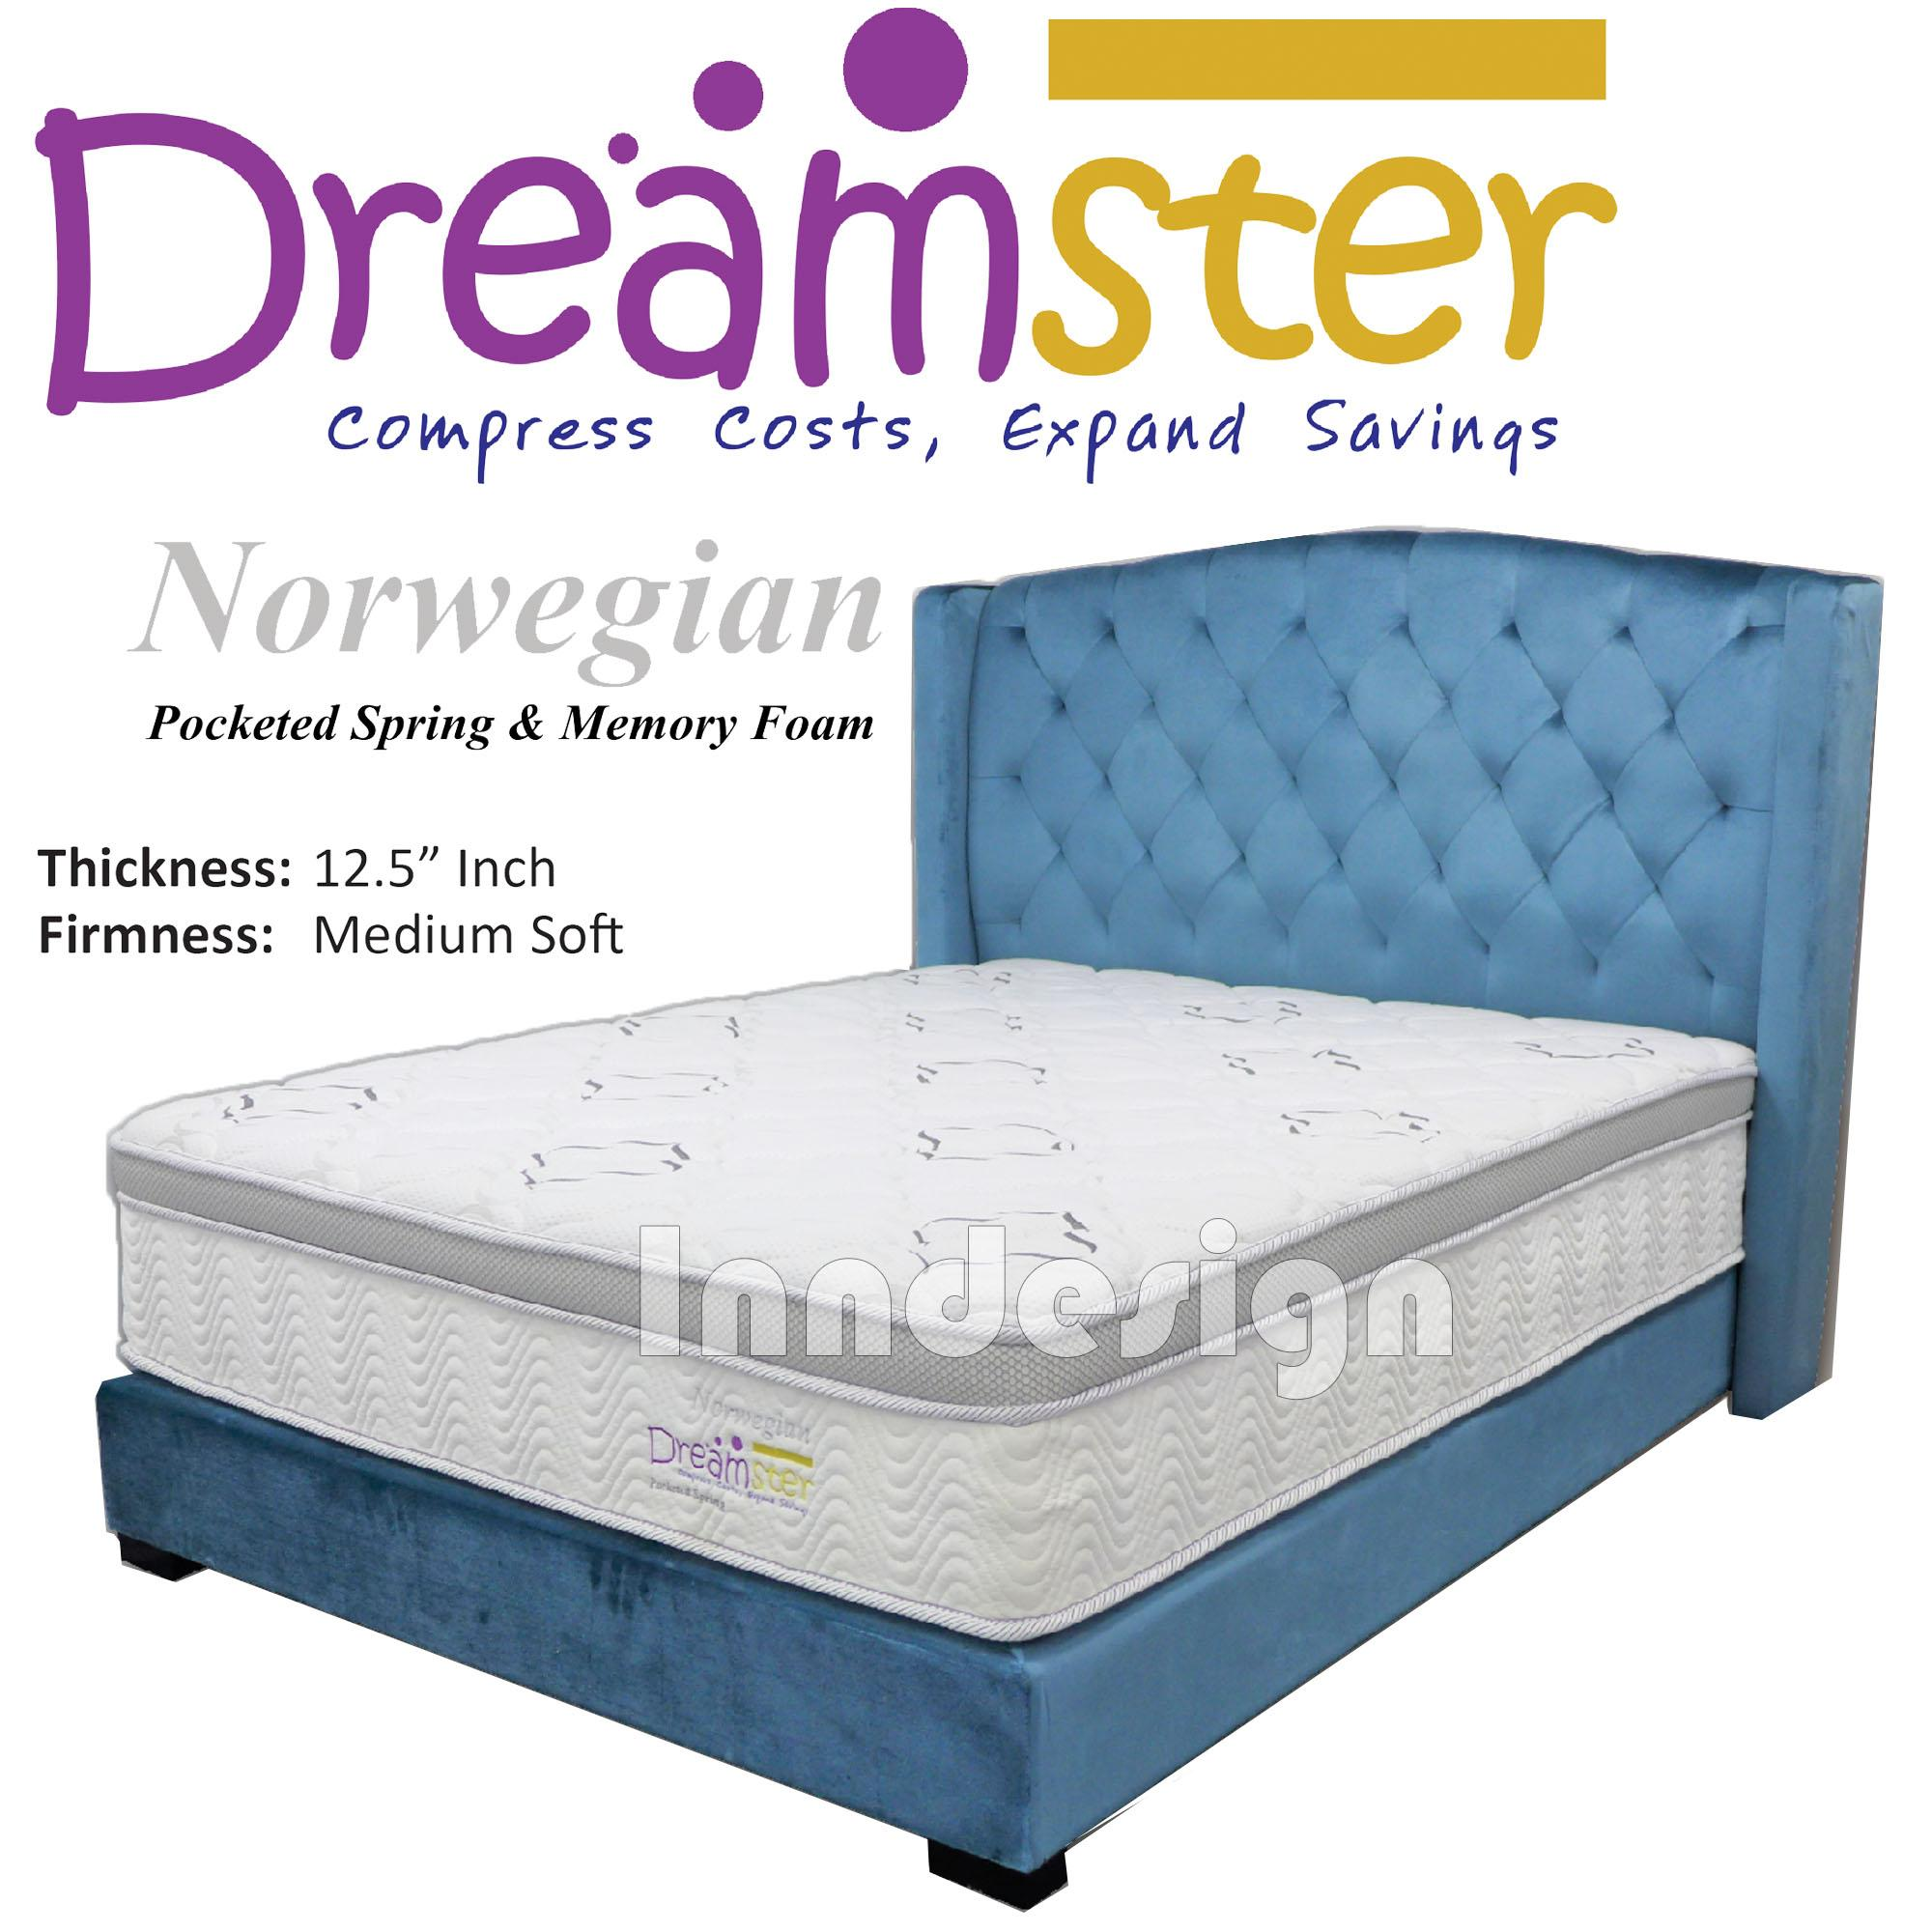 INNDESIGN Dreamster Norwegian12.5inch Pocketed Spring Mattress - (Queen Size)